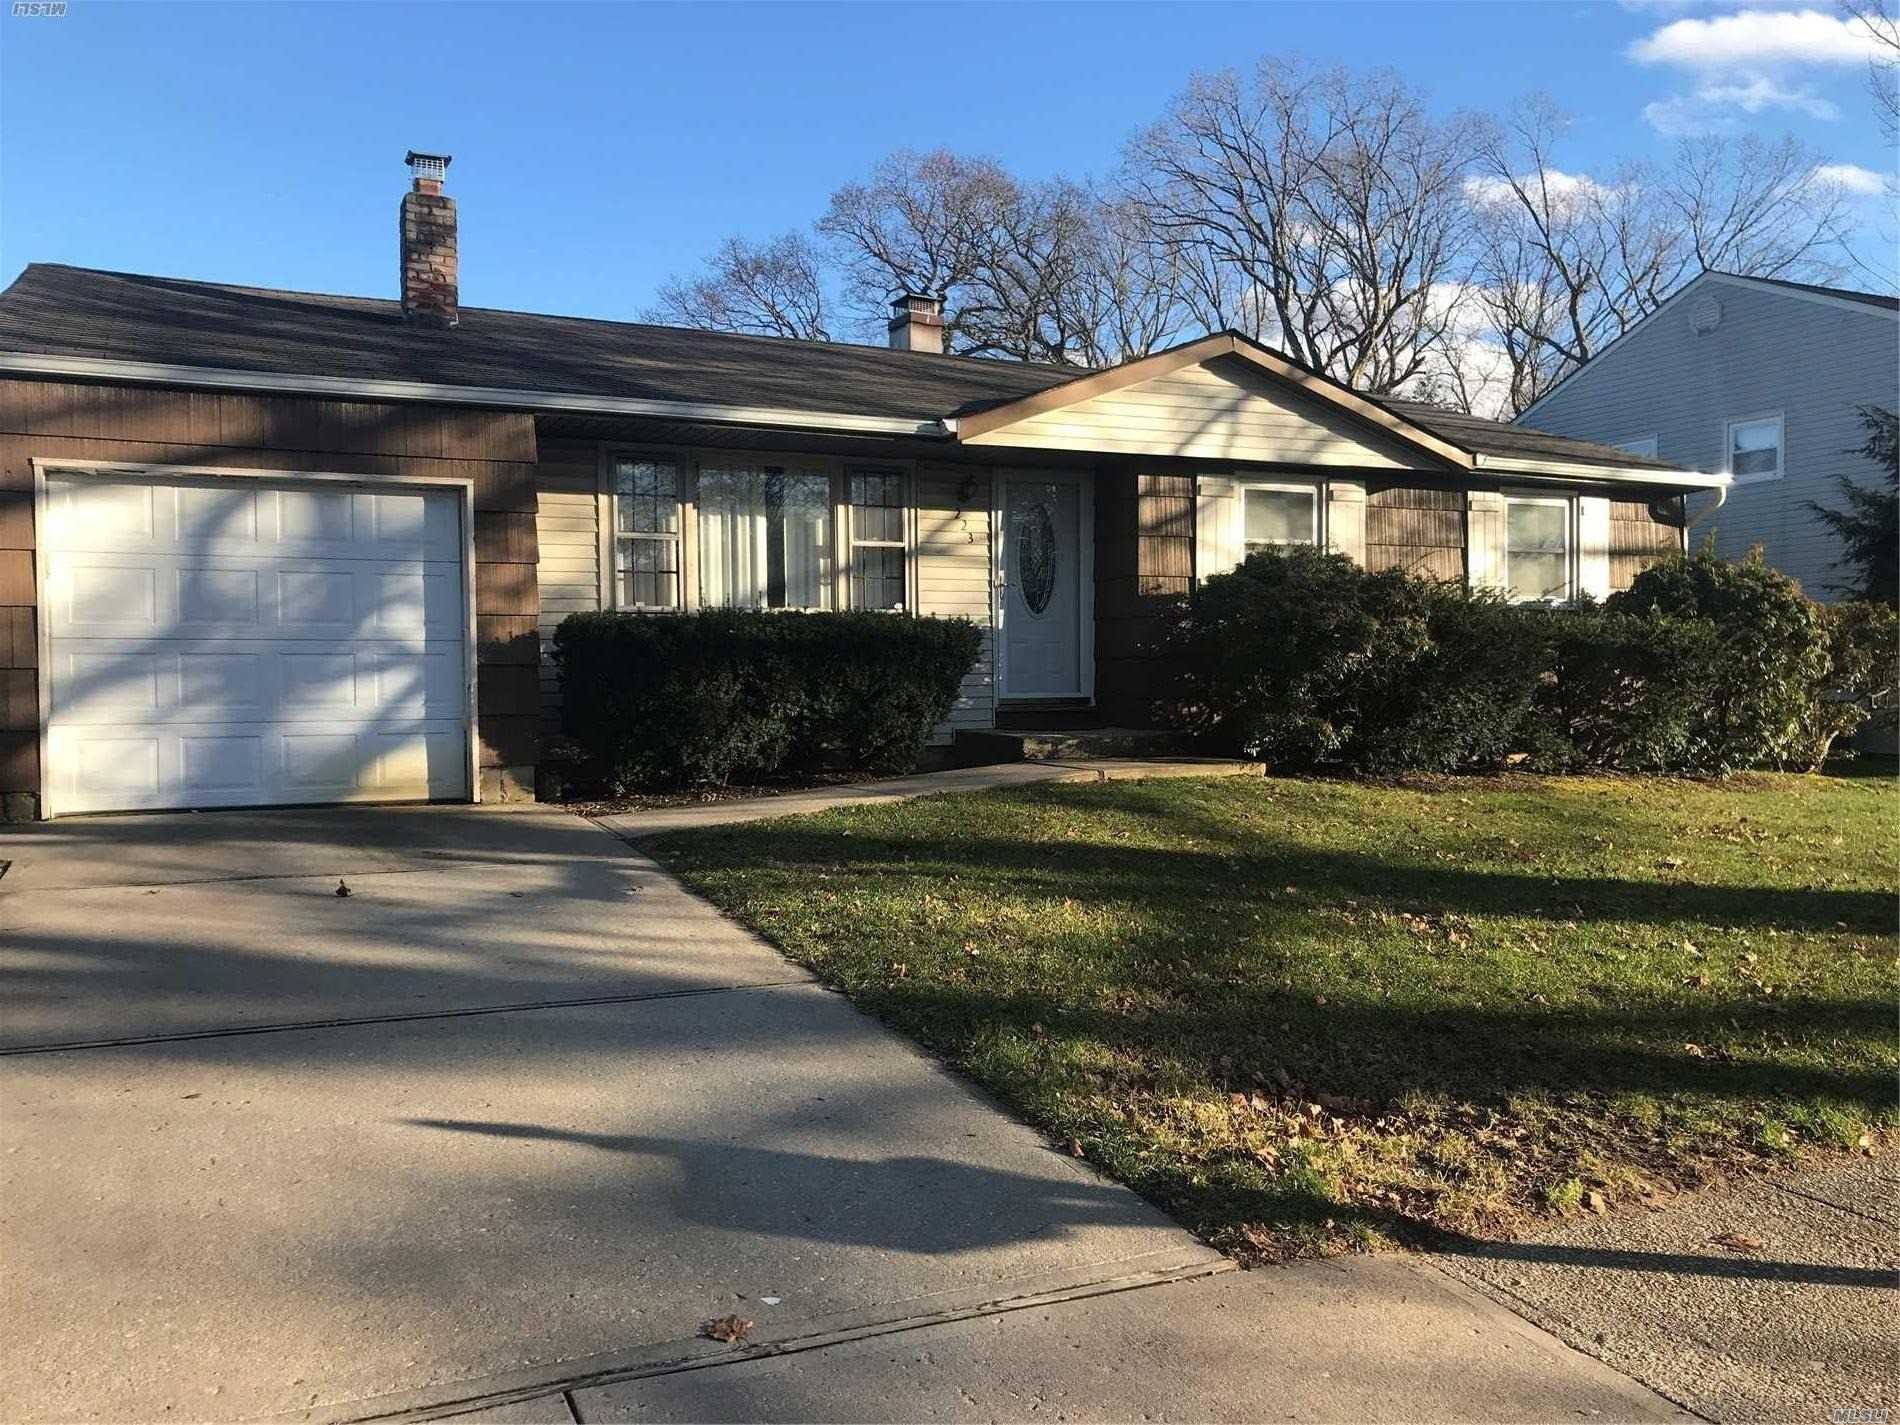 Freshly Painted Ranch With Stainless Steel Appliances, Granite Counter Tops, Open Floor Plan, New Carpet In Den & In Bsmnt, Hardwood Floors Through Out, Carpet In All Bed Rooms. Fire Place Can Be Re Opened, Was Not Being Used. Has security system in place, Fenced In Yard, New Front Larson Oval Glass Door Installed, California Closets In Middle Rm And Master. Elec Front Garage Door, One Car Garage With Attic Entrance, Brand new oil tank, Central Air, Good Roof Hi Hats In Kitchen. Well Maintained